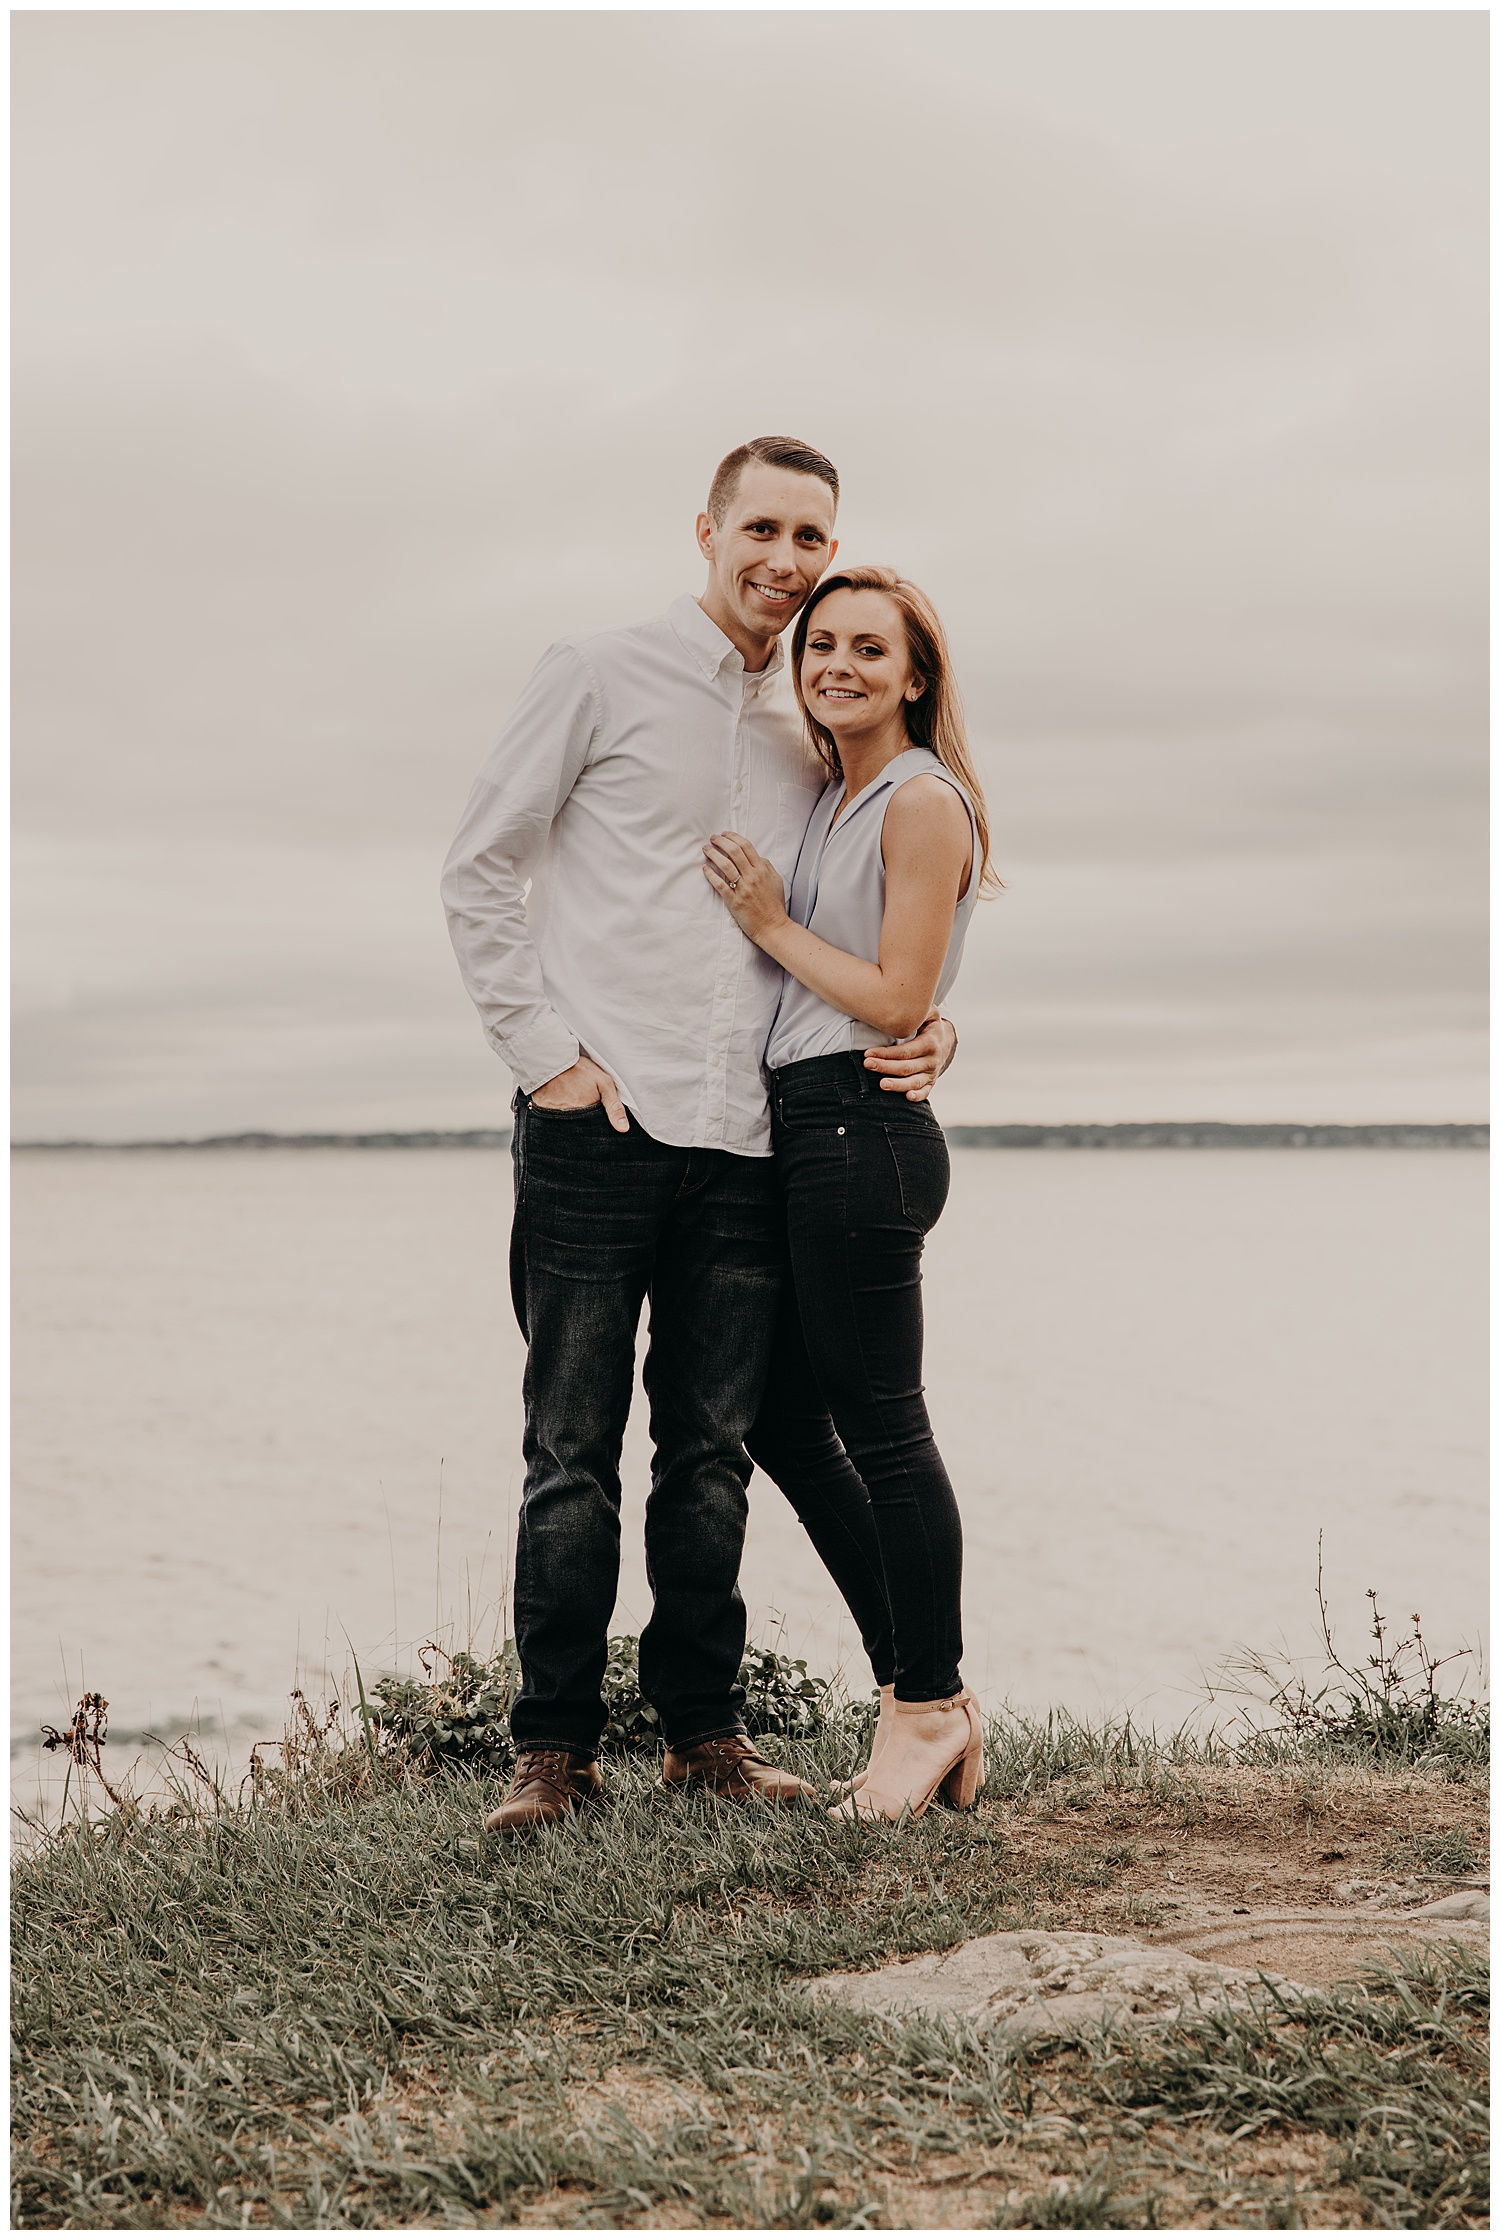 Dan_Sunni_Beavertail_Point_Engagement_Session_003.jpeg